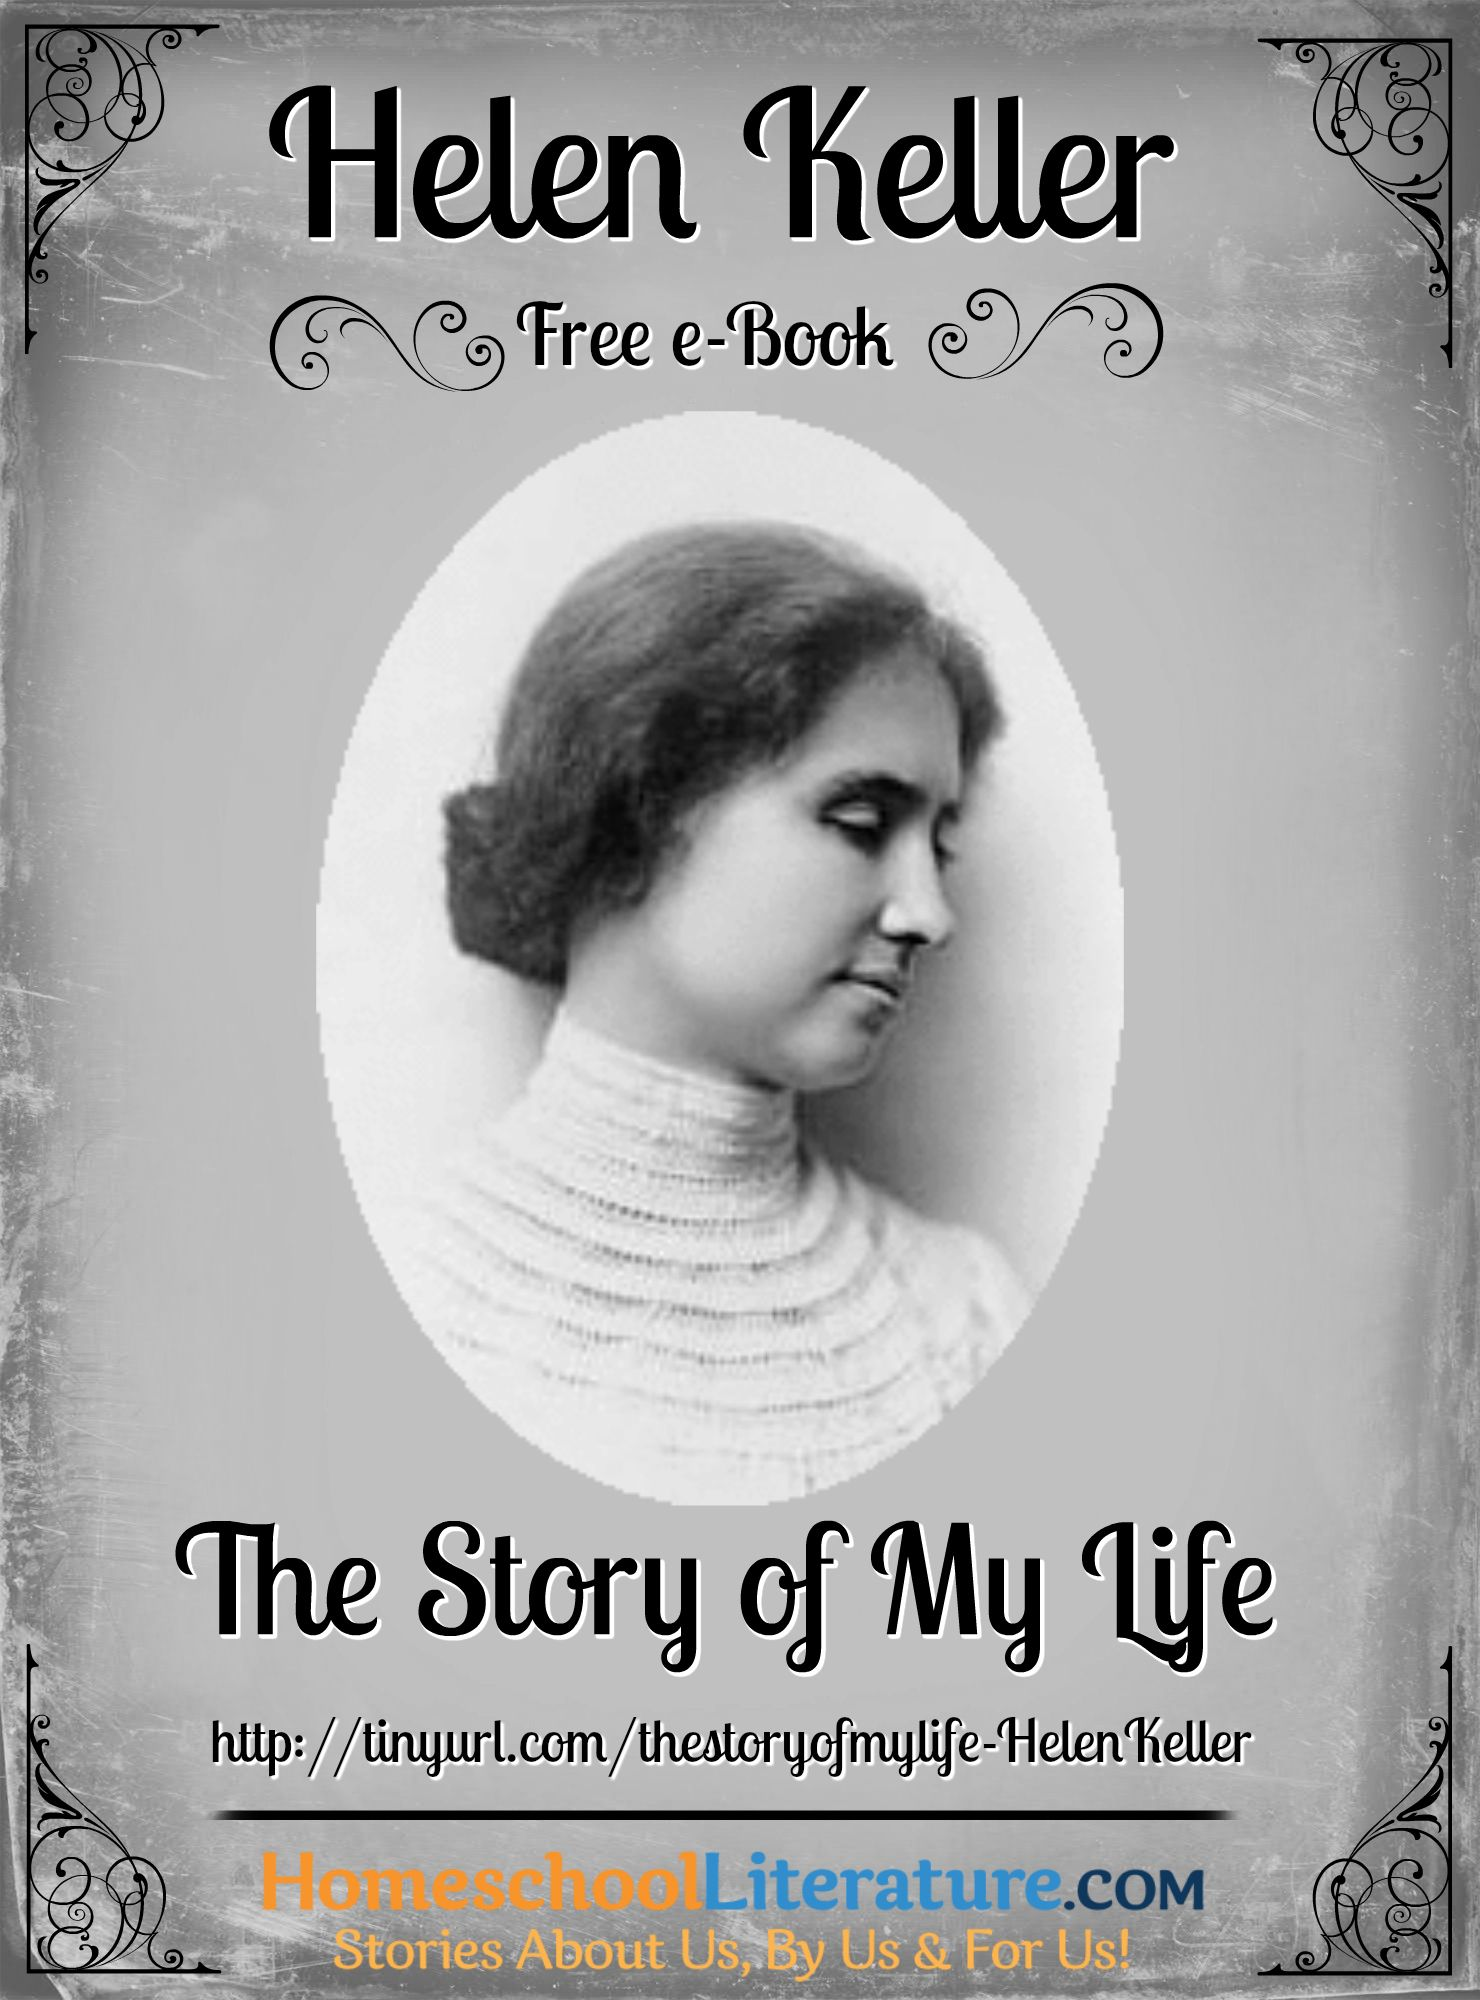 Today In Helen Keller Was Born Here Is A Link To